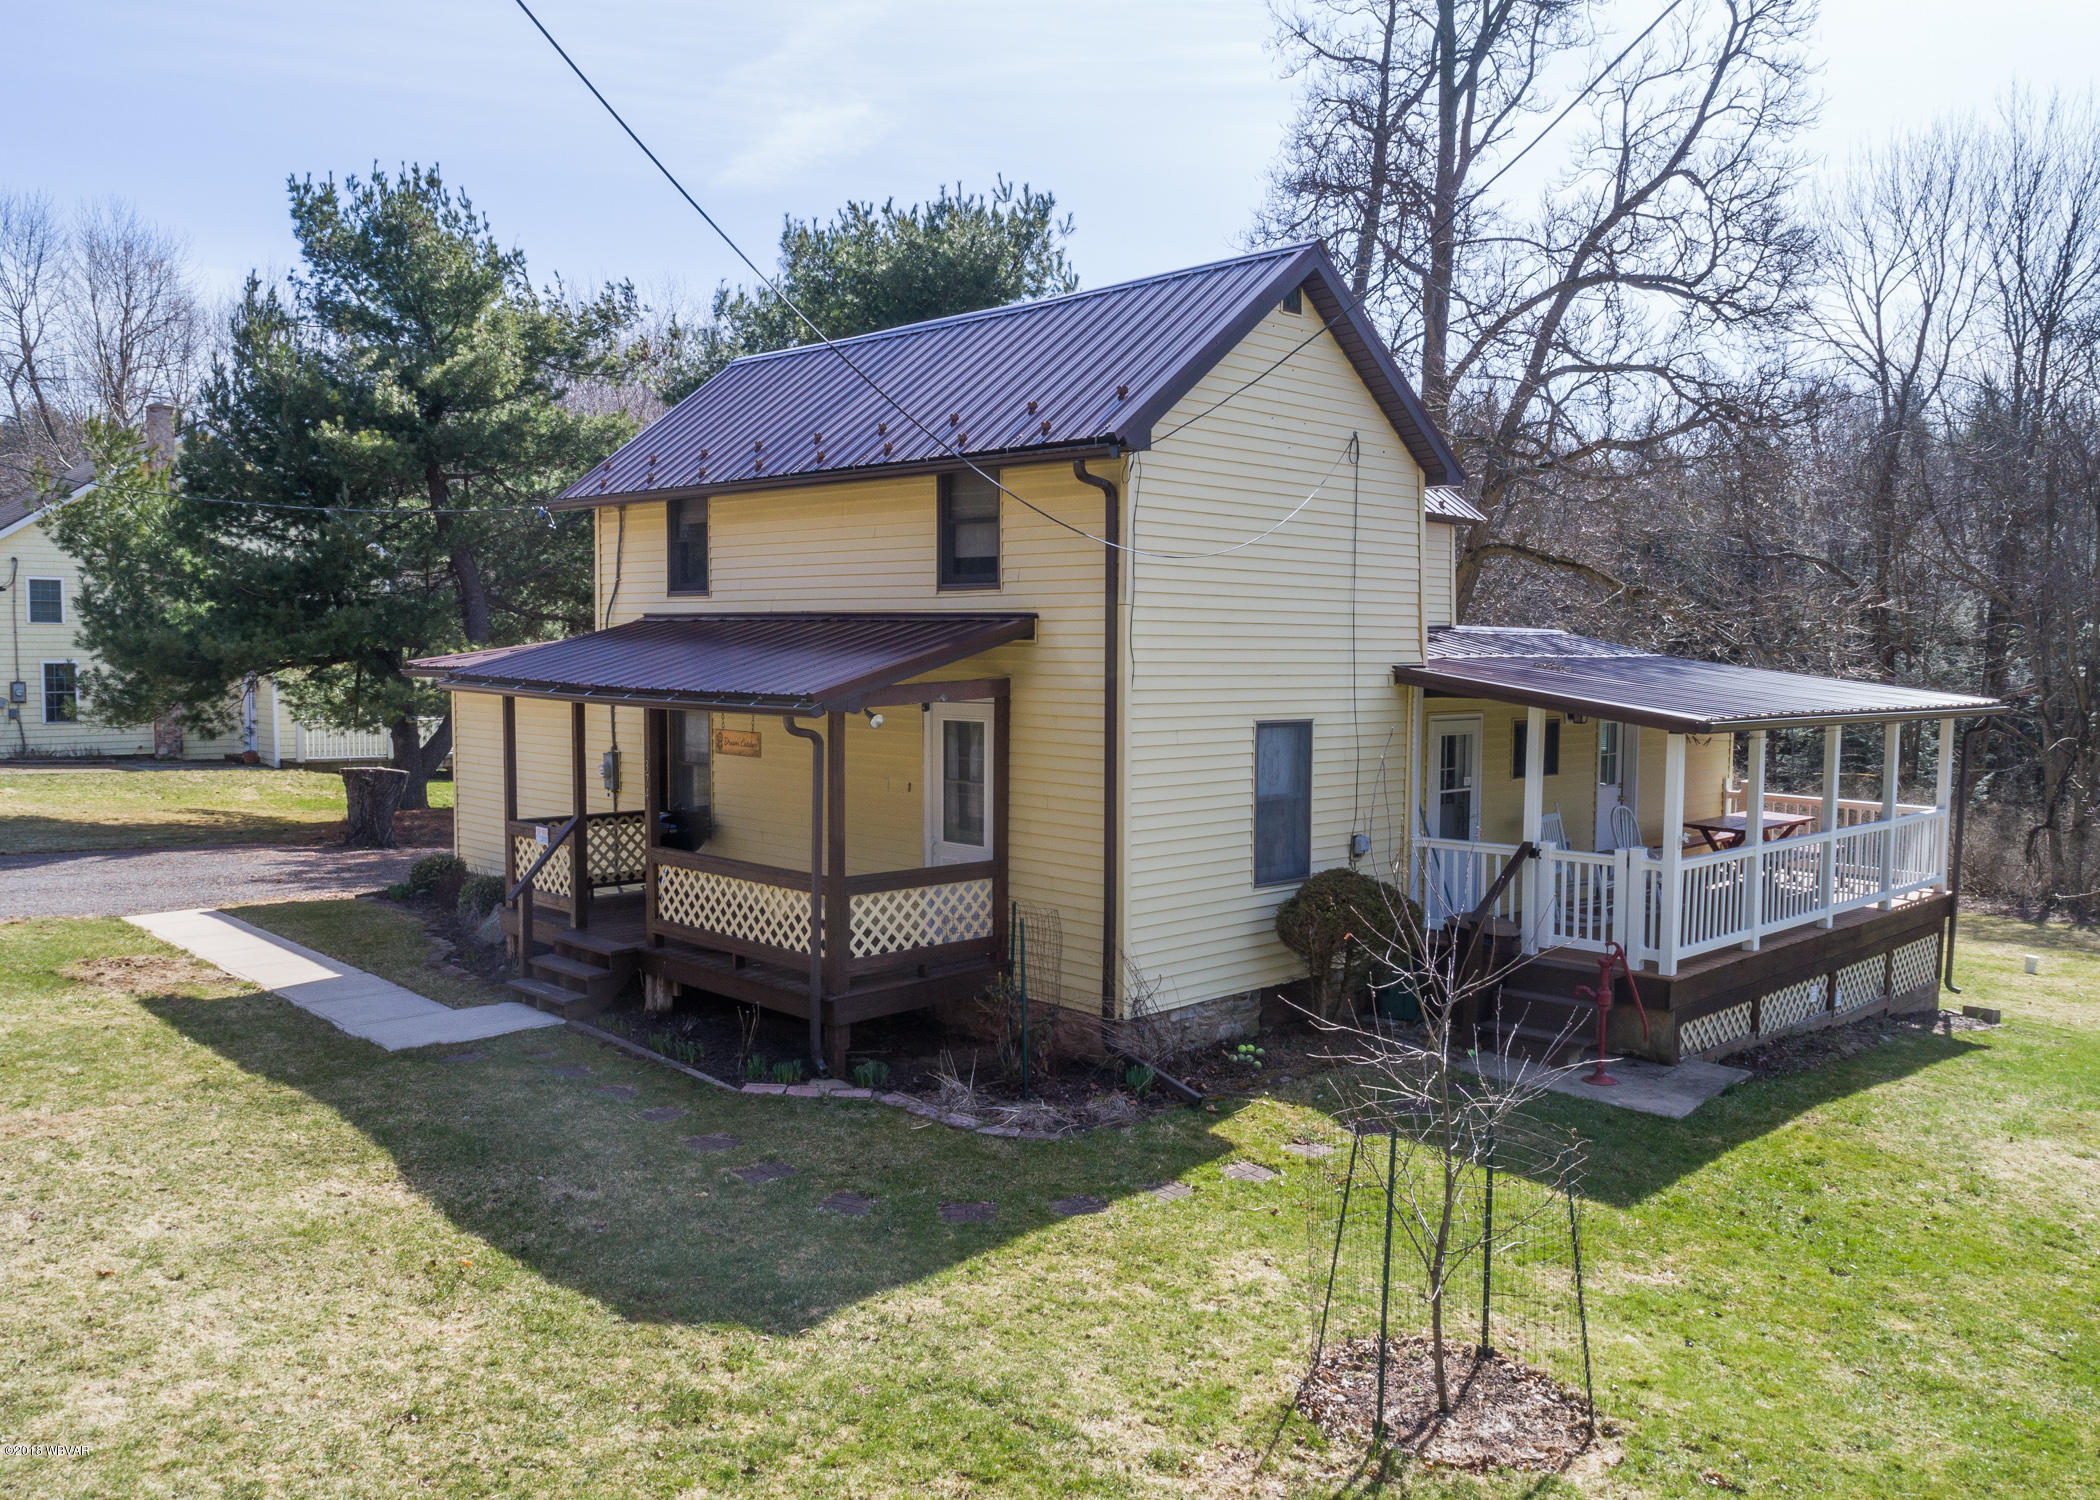 374 ALLEGHENY AVENUE,Eagles Mere,PA 17731,4 Bedrooms Bedrooms,1.5 BathroomsBathrooms,Residential,ALLEGHENY,WB-83789